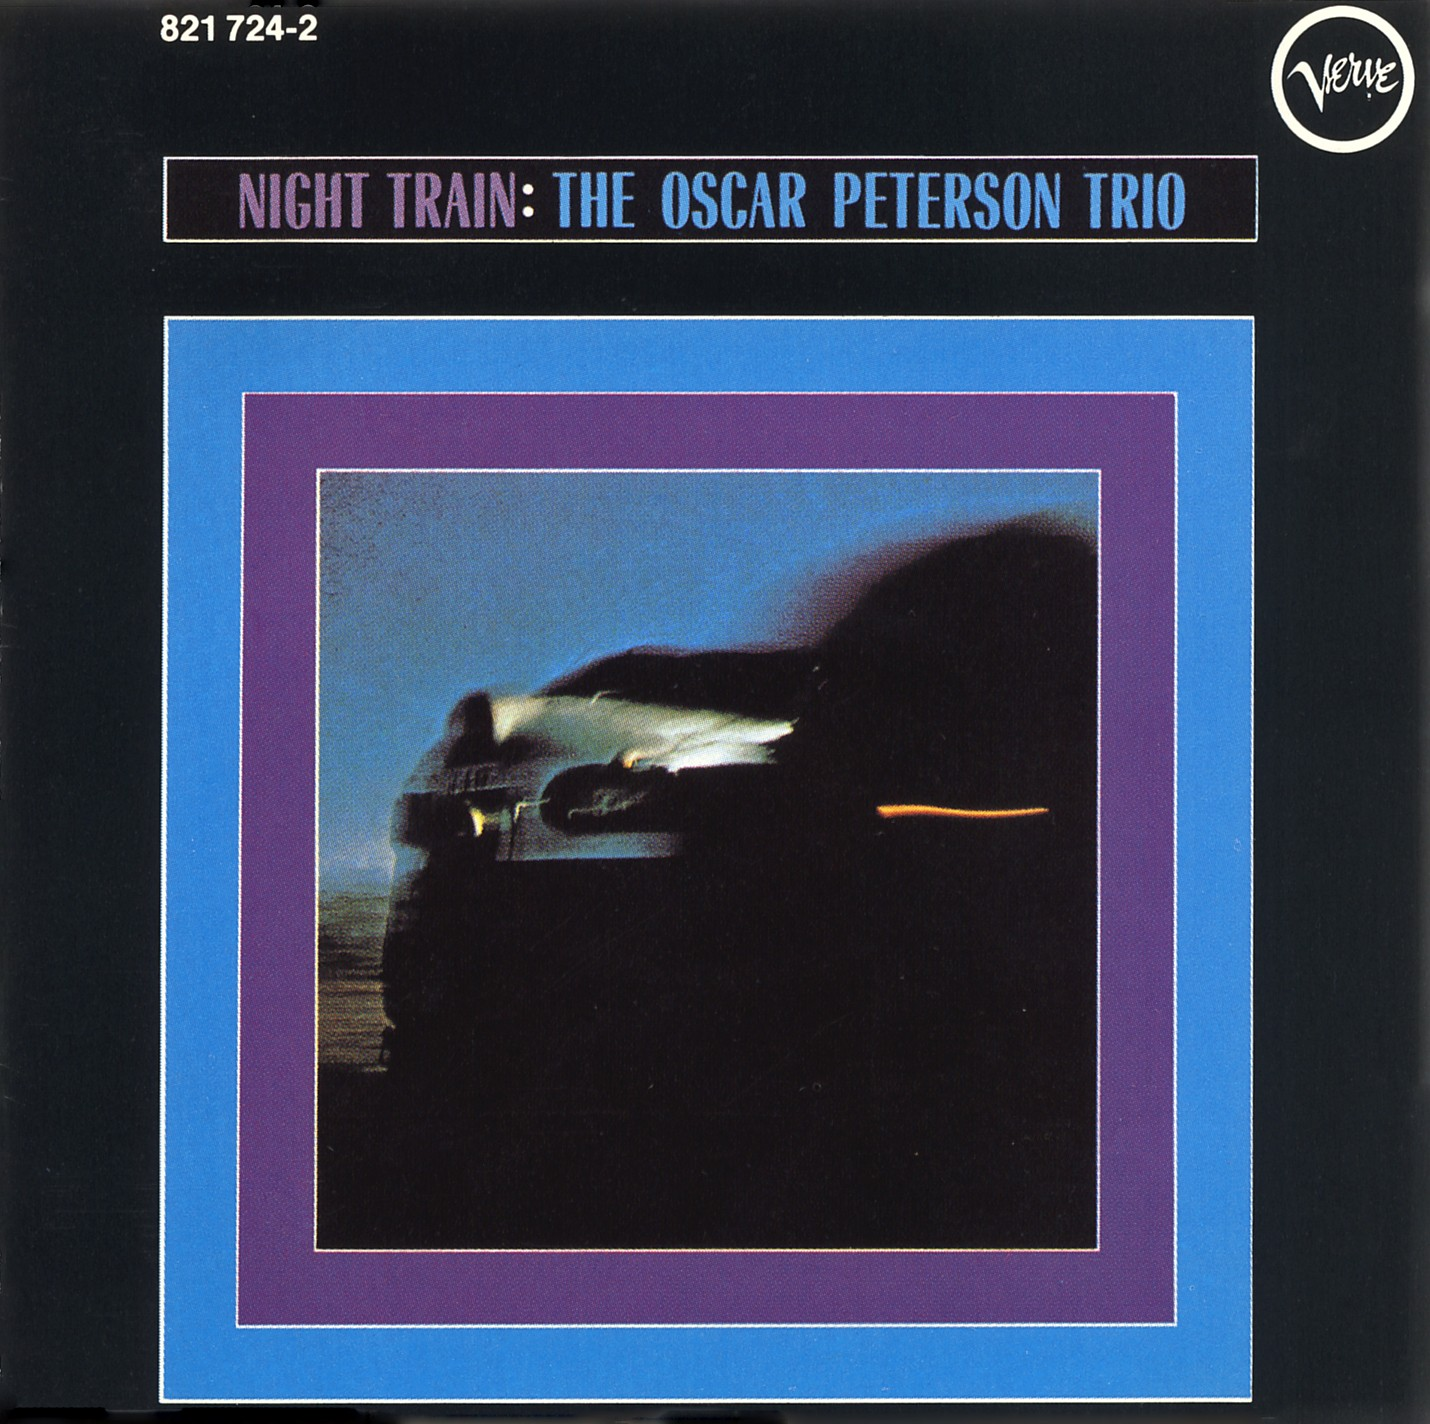 The Oscar Peterson Trio Night Train Vol. 4